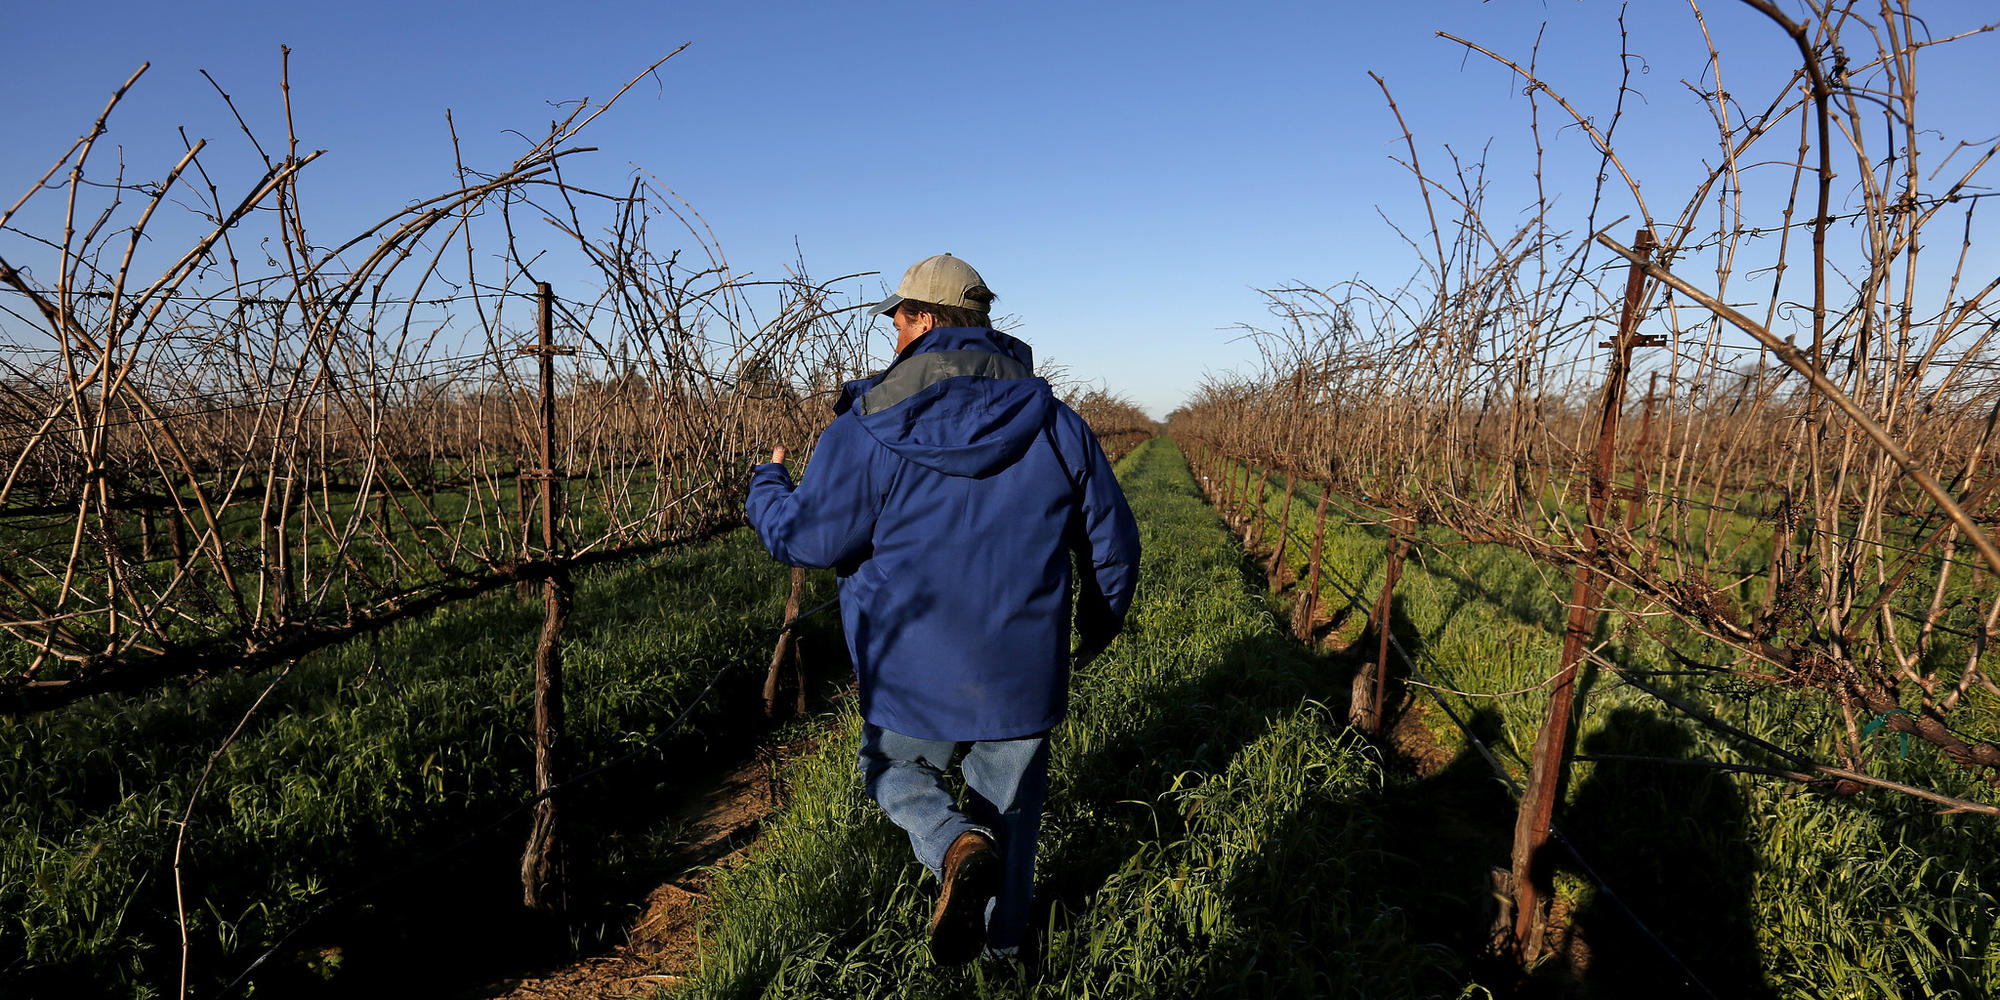 Wages rise on California farms  Americans still don't want the job